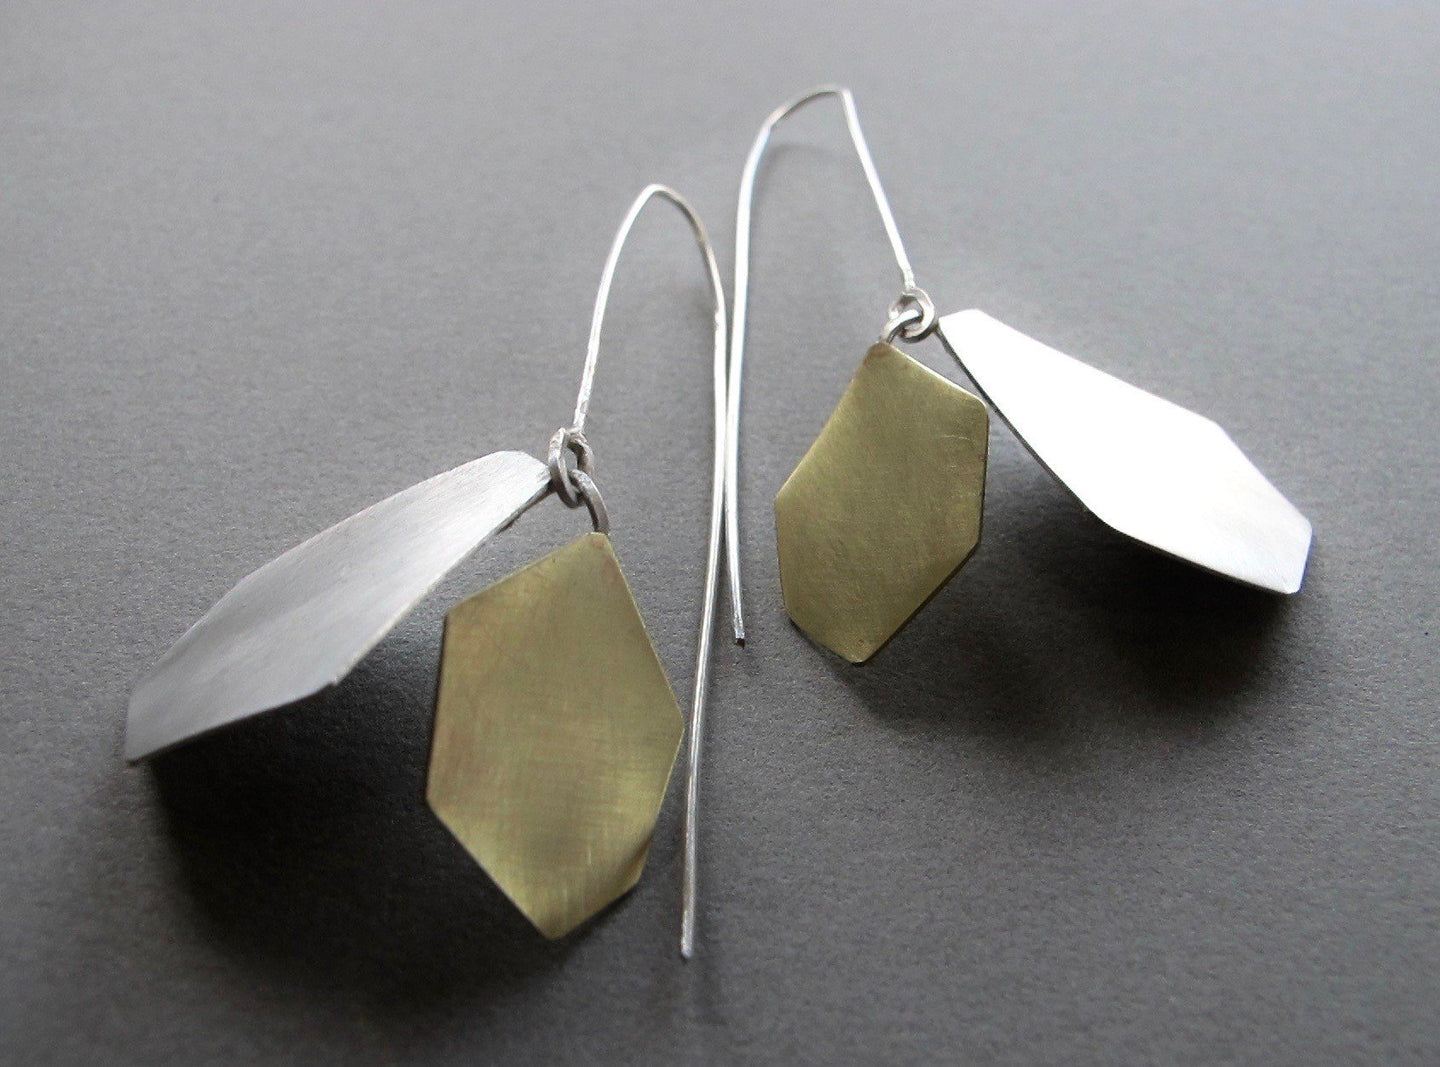 Di Luce Design | E-Sinker in Silver & Brass at SHiFT Bainbridge